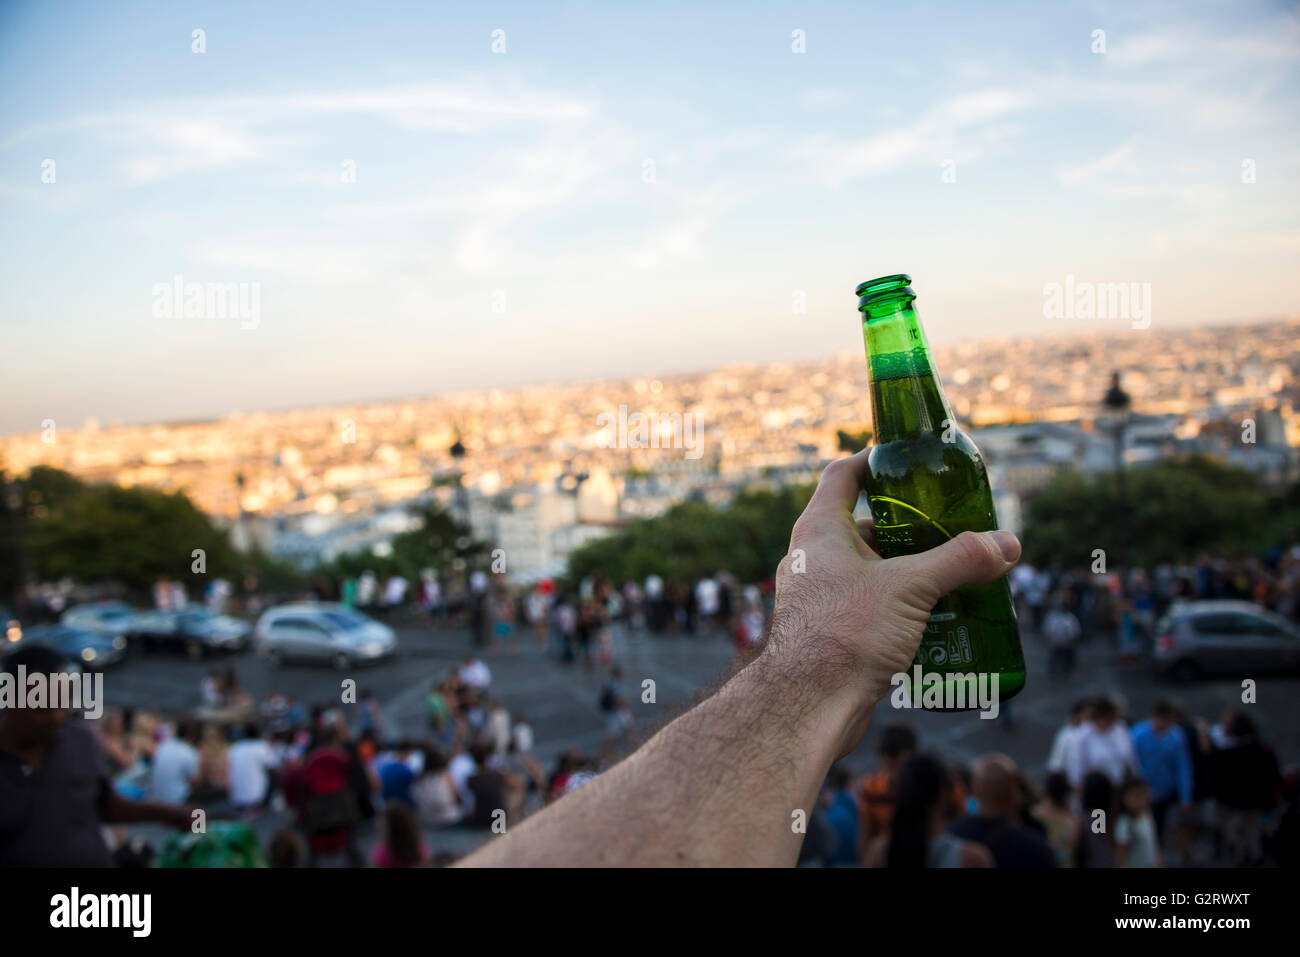 A hand grabing a beer in the ambience of a very crouded staircase in Montmatre, Paris, France. Stock Photo